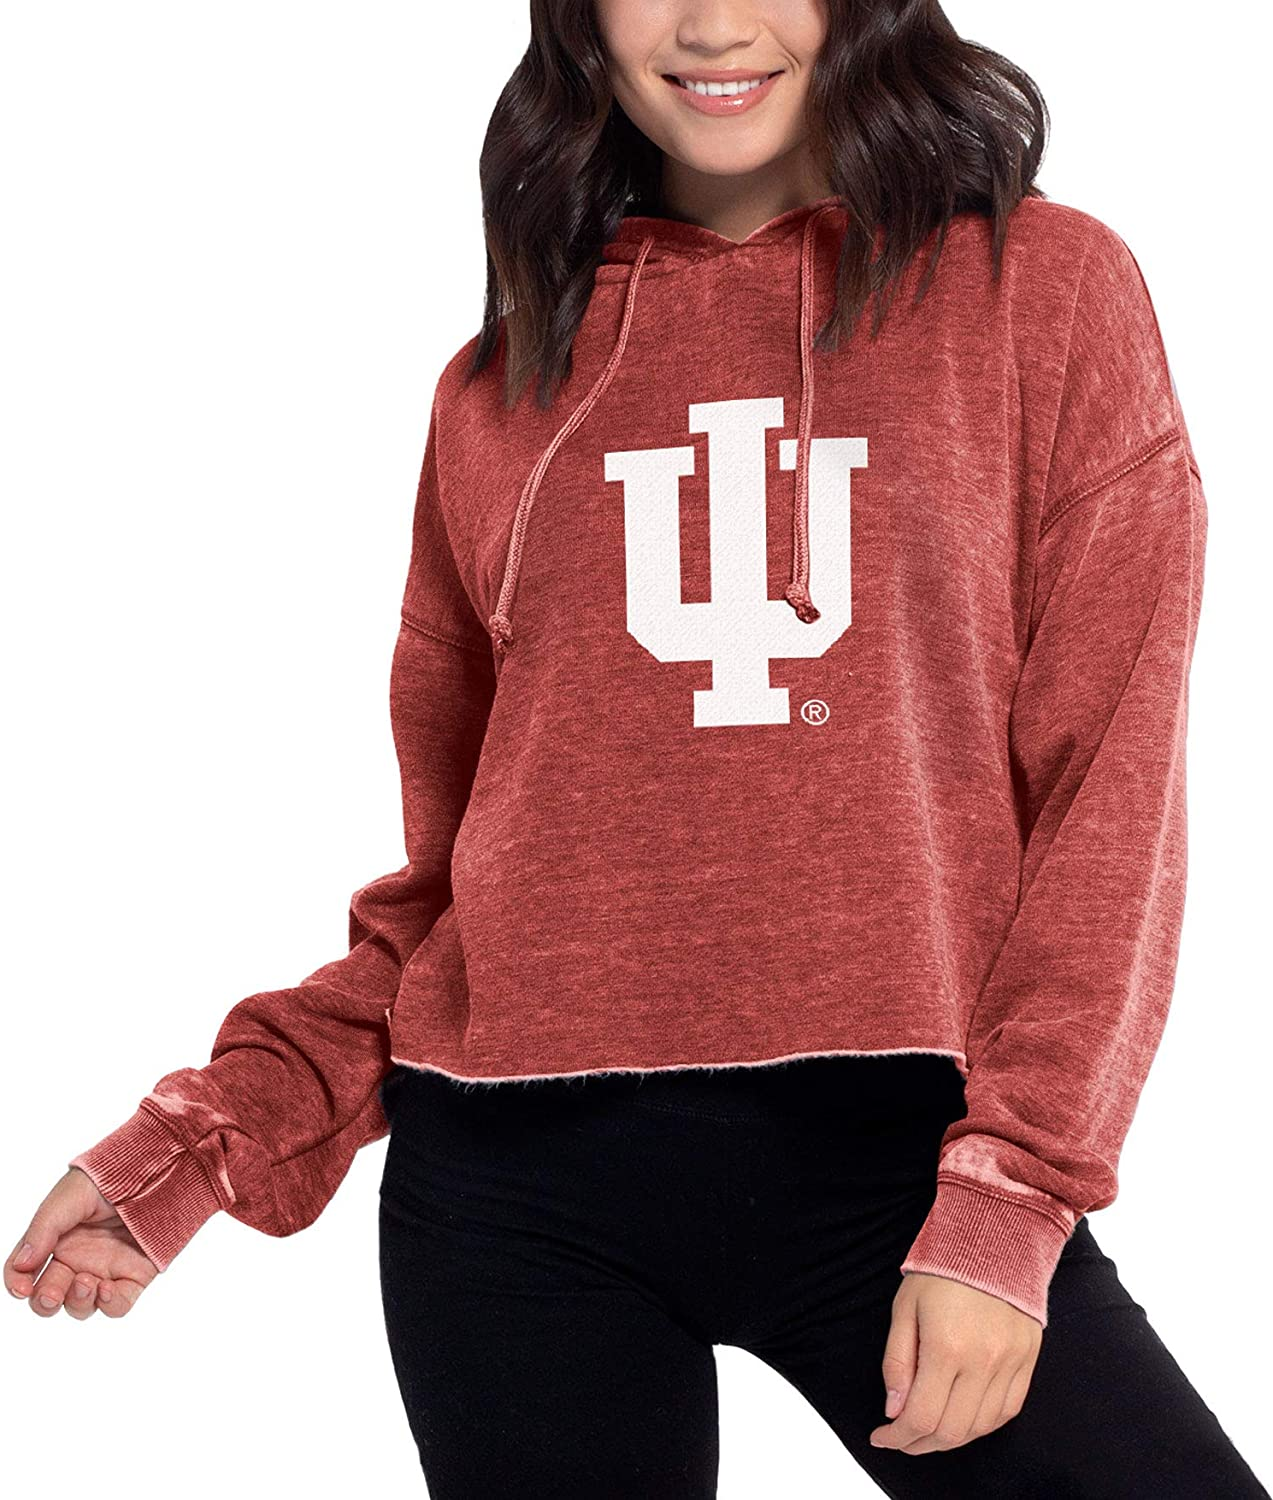 chicka-d NCAA womens Campus Cropped Hoodie